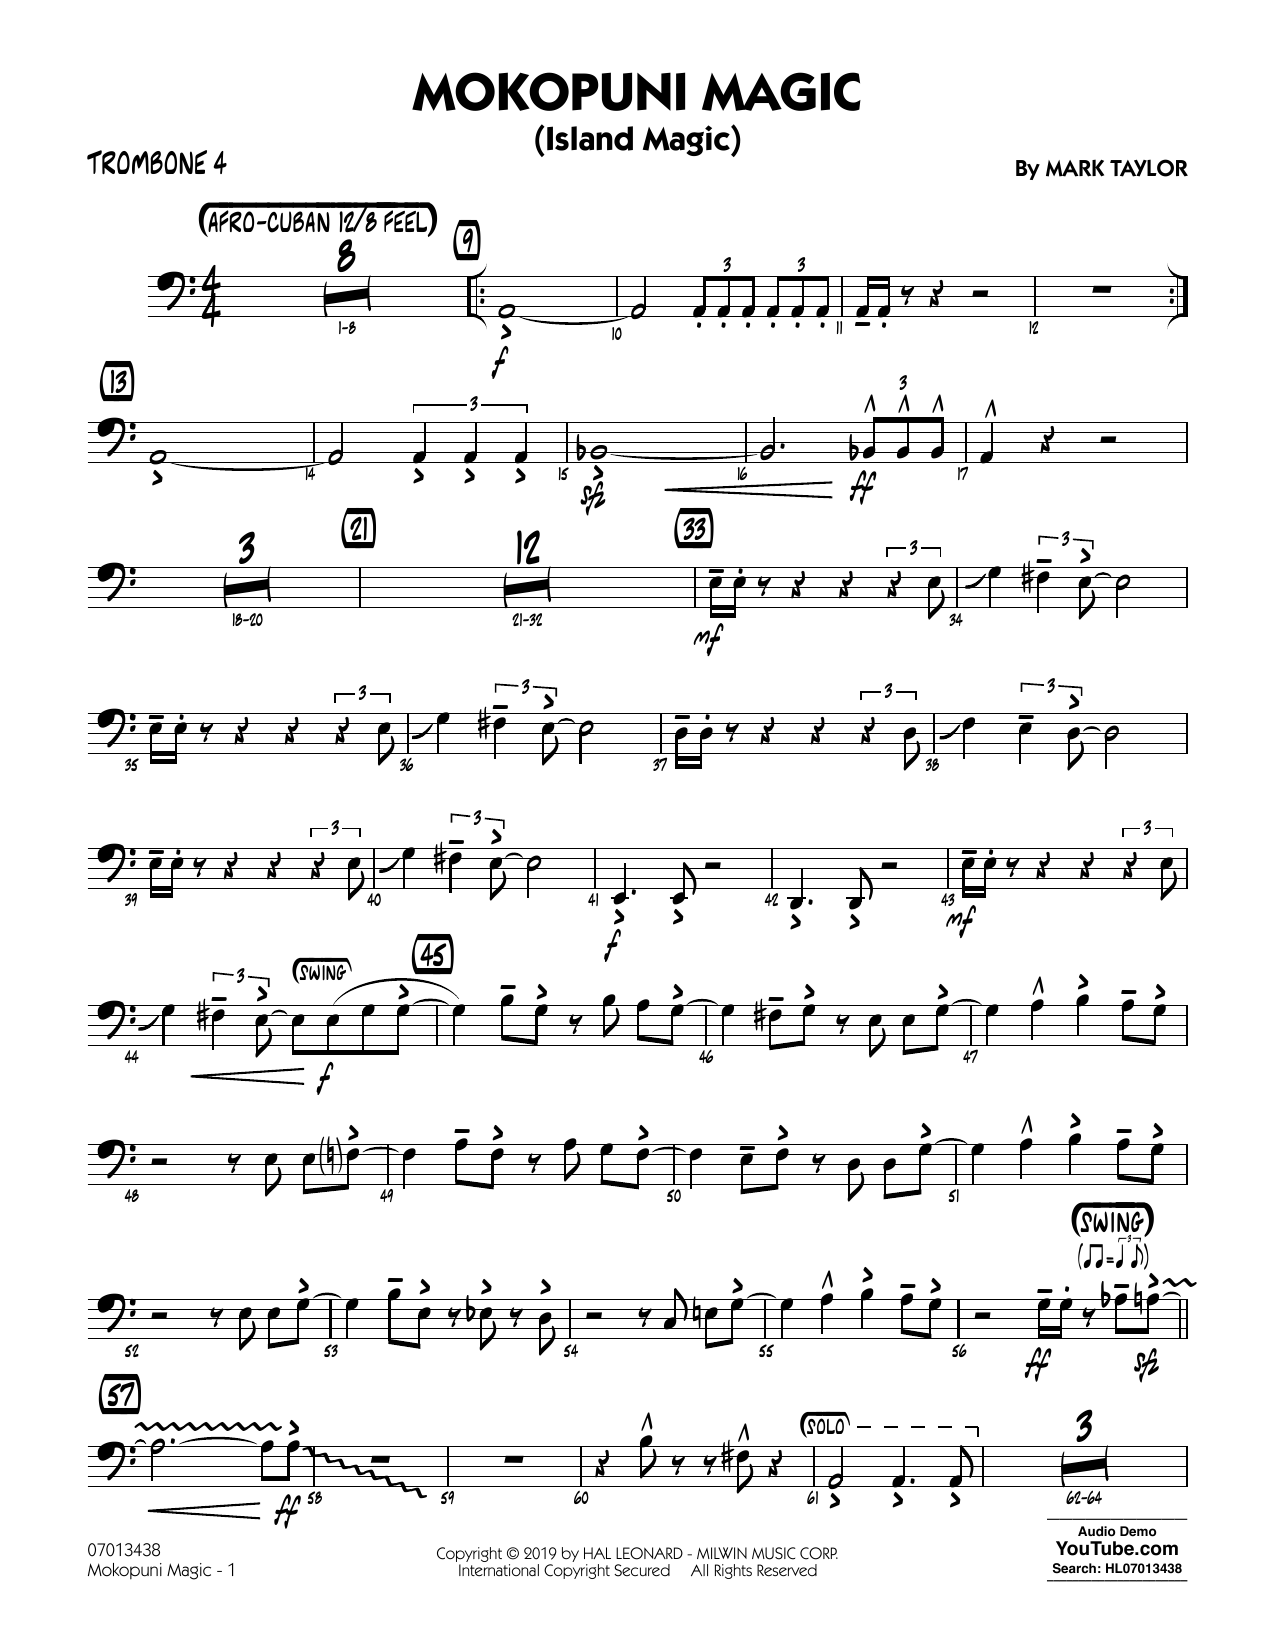 Mark Taylor Mokopuni Magic (Island Magic) - Trombone 4 sheet music notes and chords. Download Printable PDF.